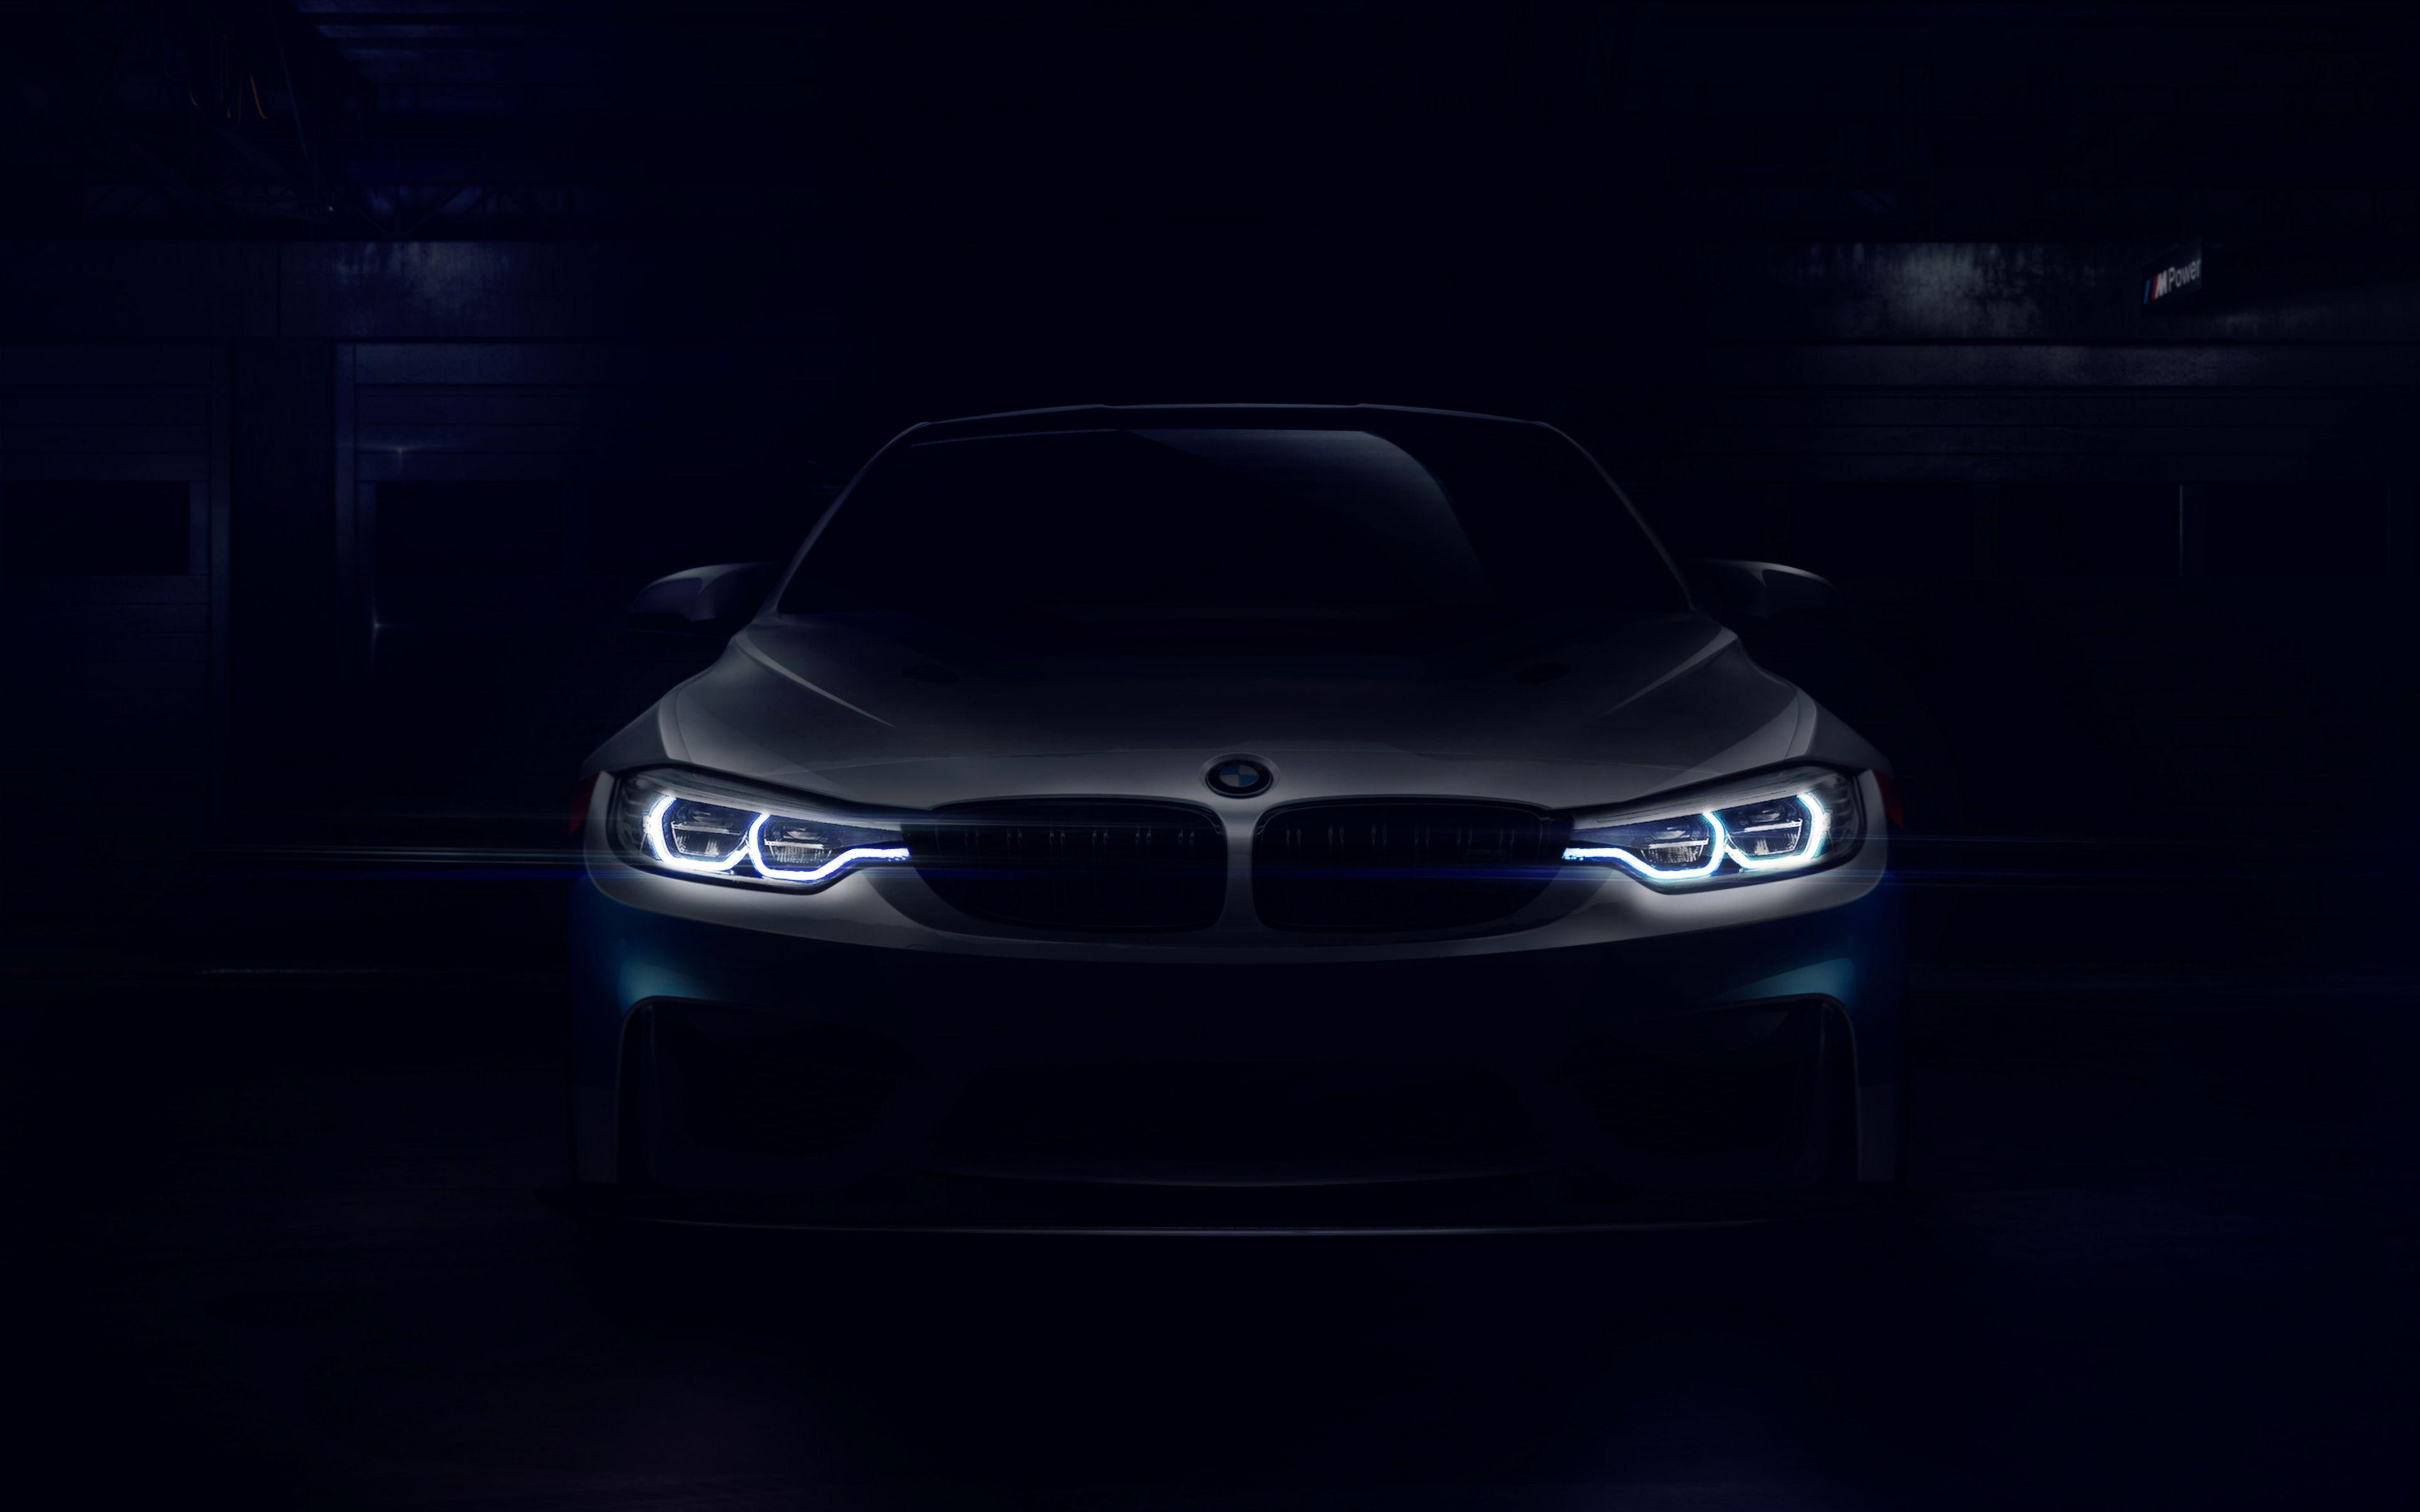 Bmw Headlights Wallpapers Wallpaper Cave